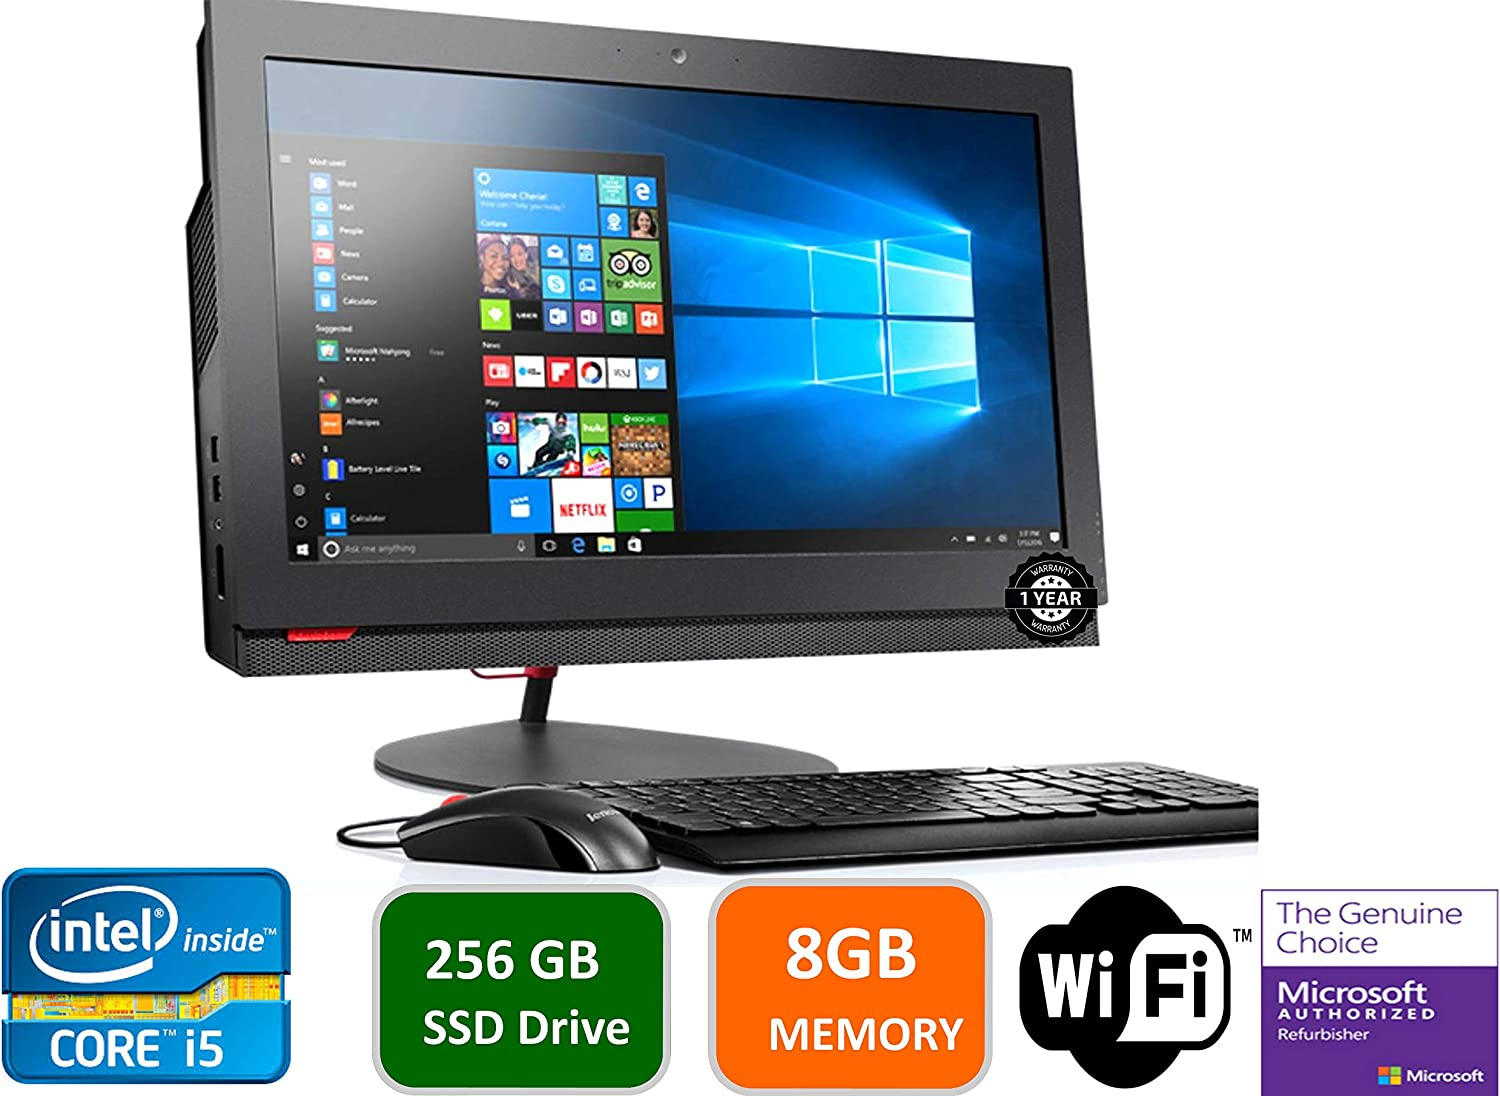 Lenovo ThinkCentre M800Z 21.5 in HD+ All-in-One Desktop Computer, Intel Quad Core i5-6500-3.2 GHz, 8GB RAM, 256GB SSD HDD, USB 3.0, DVDRW, DiaplayPort, RJ-45, Windows 10 Professional (Renewed)